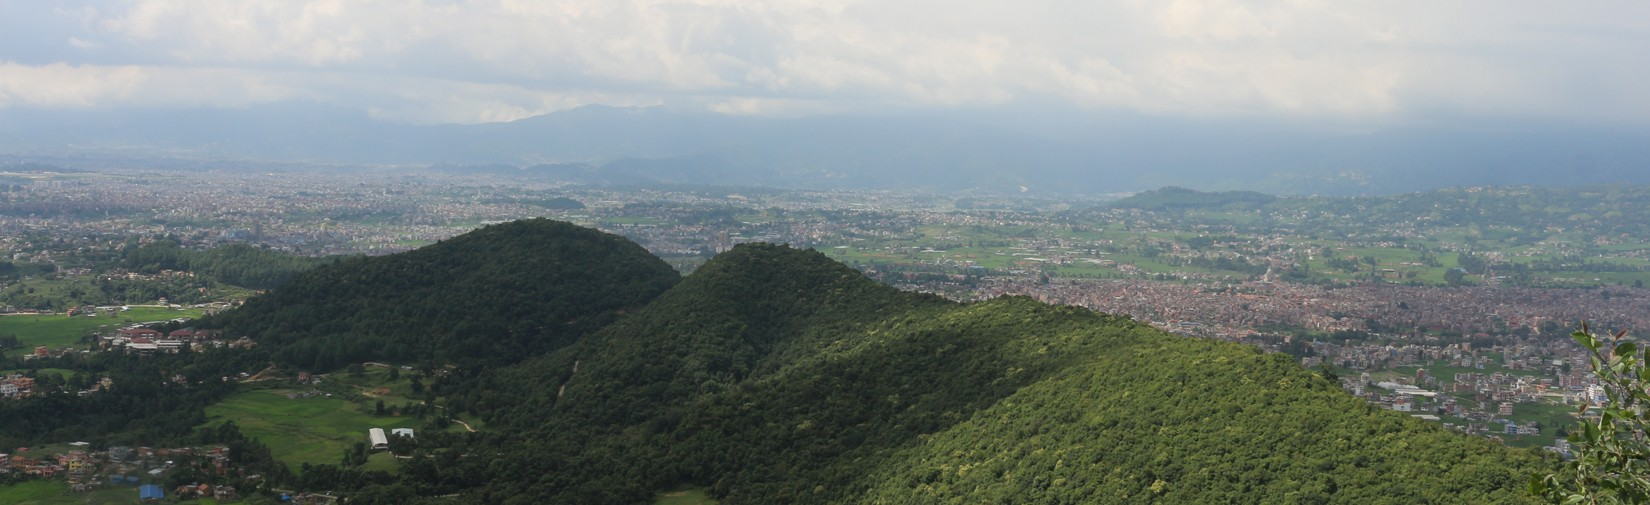 View of Kathmandu valley from Ranikot hiking trail